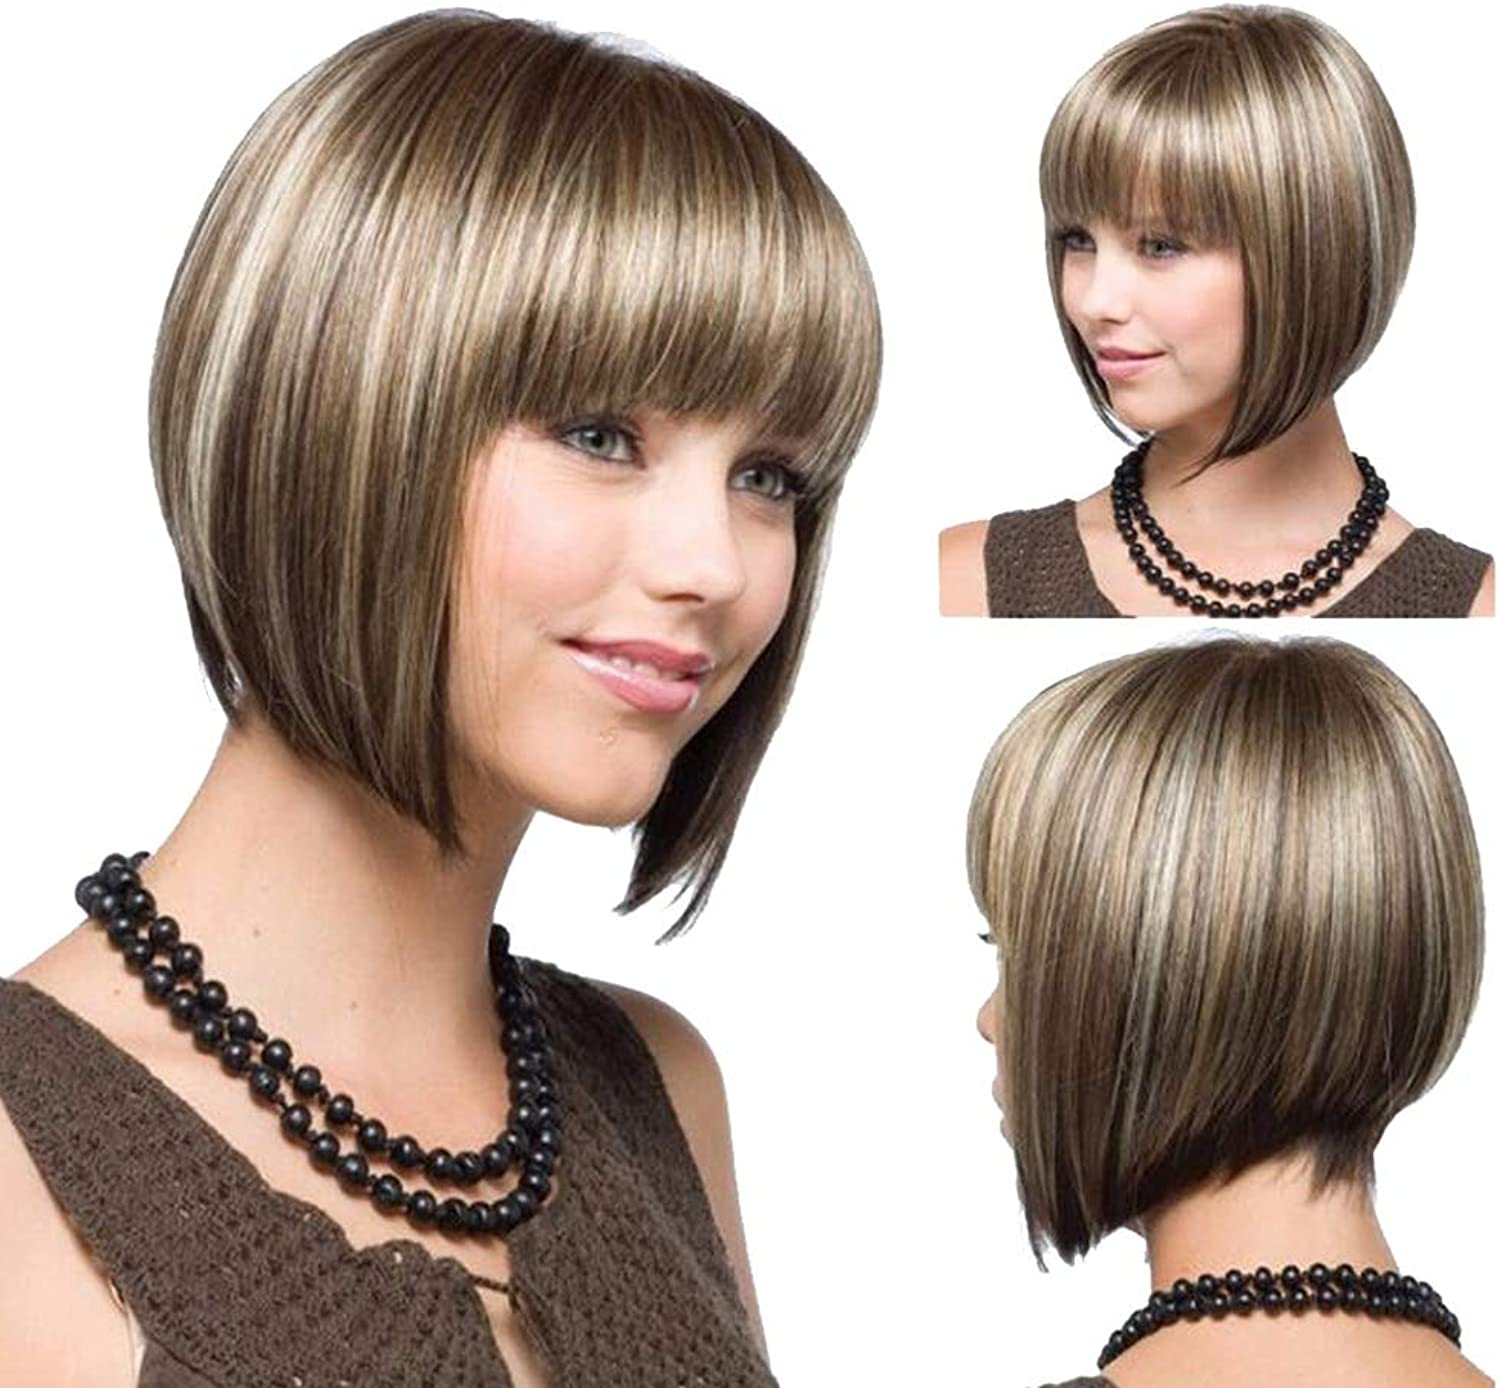 AISHUAIGE 32cm Girl Bob Blonde Hair Wig Stylish Short Straight Ombre Blonde Synthetic Wigs for Women Costume Party with Free Wig Cap